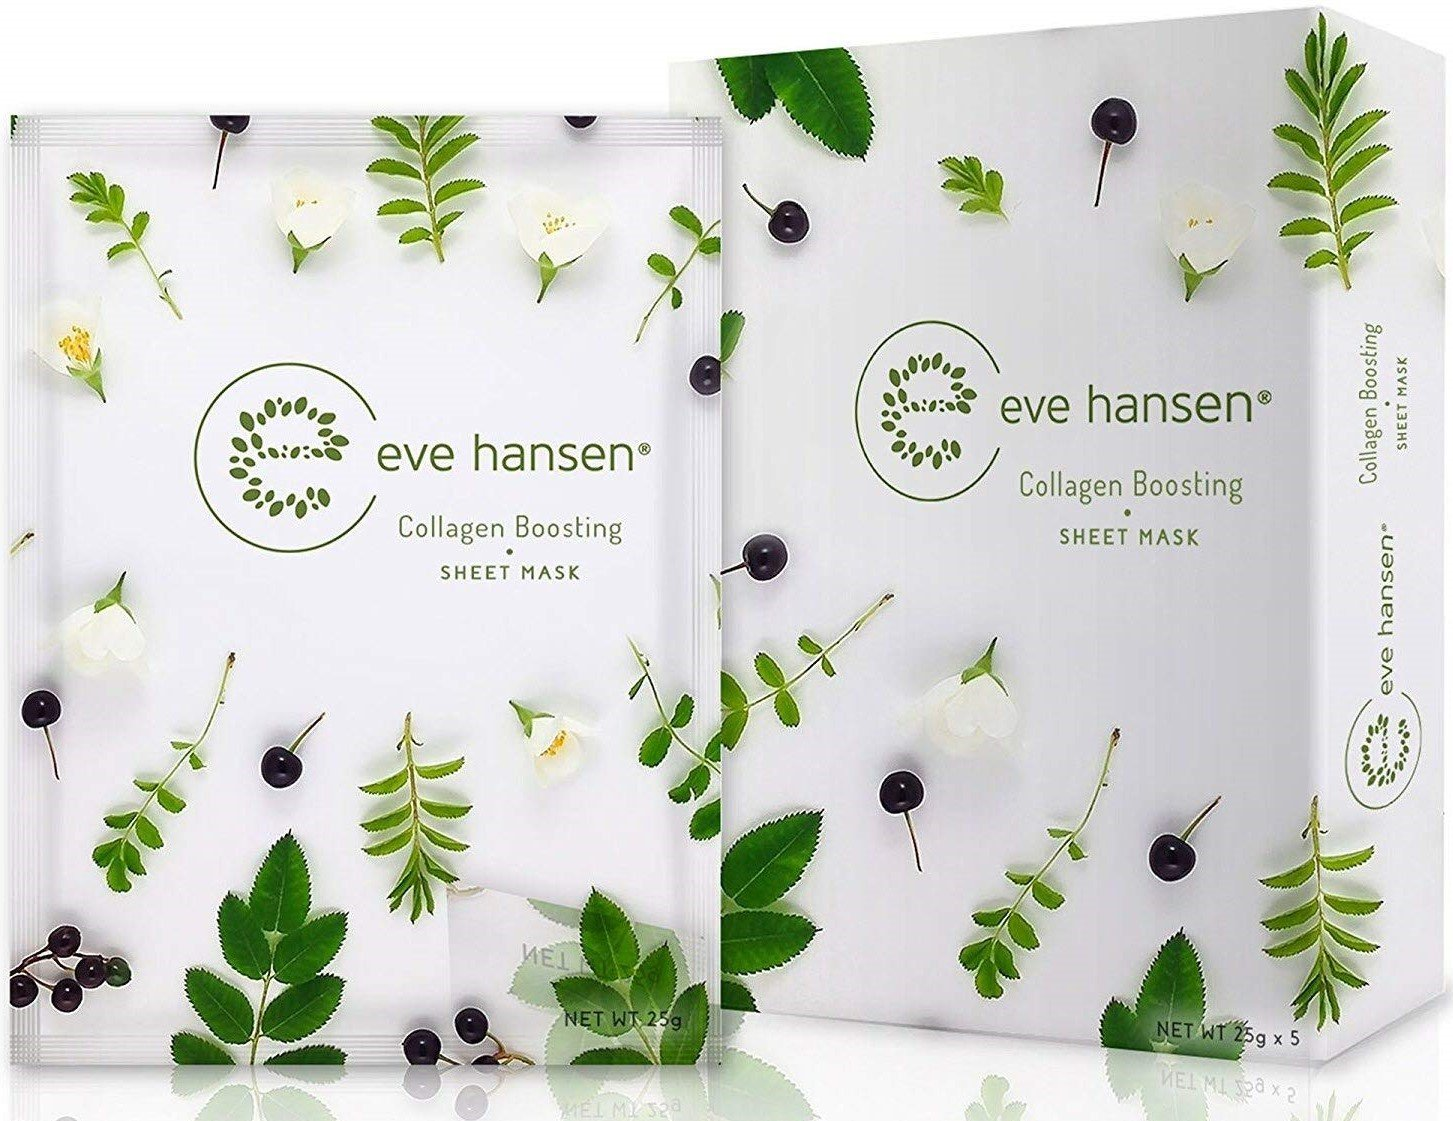 Collagen Sheet Mask by Eve Hansen - Reduce the Appearance of Fine Lines, Wrinkles, and Skin Sagging - 5X Facial Masks …